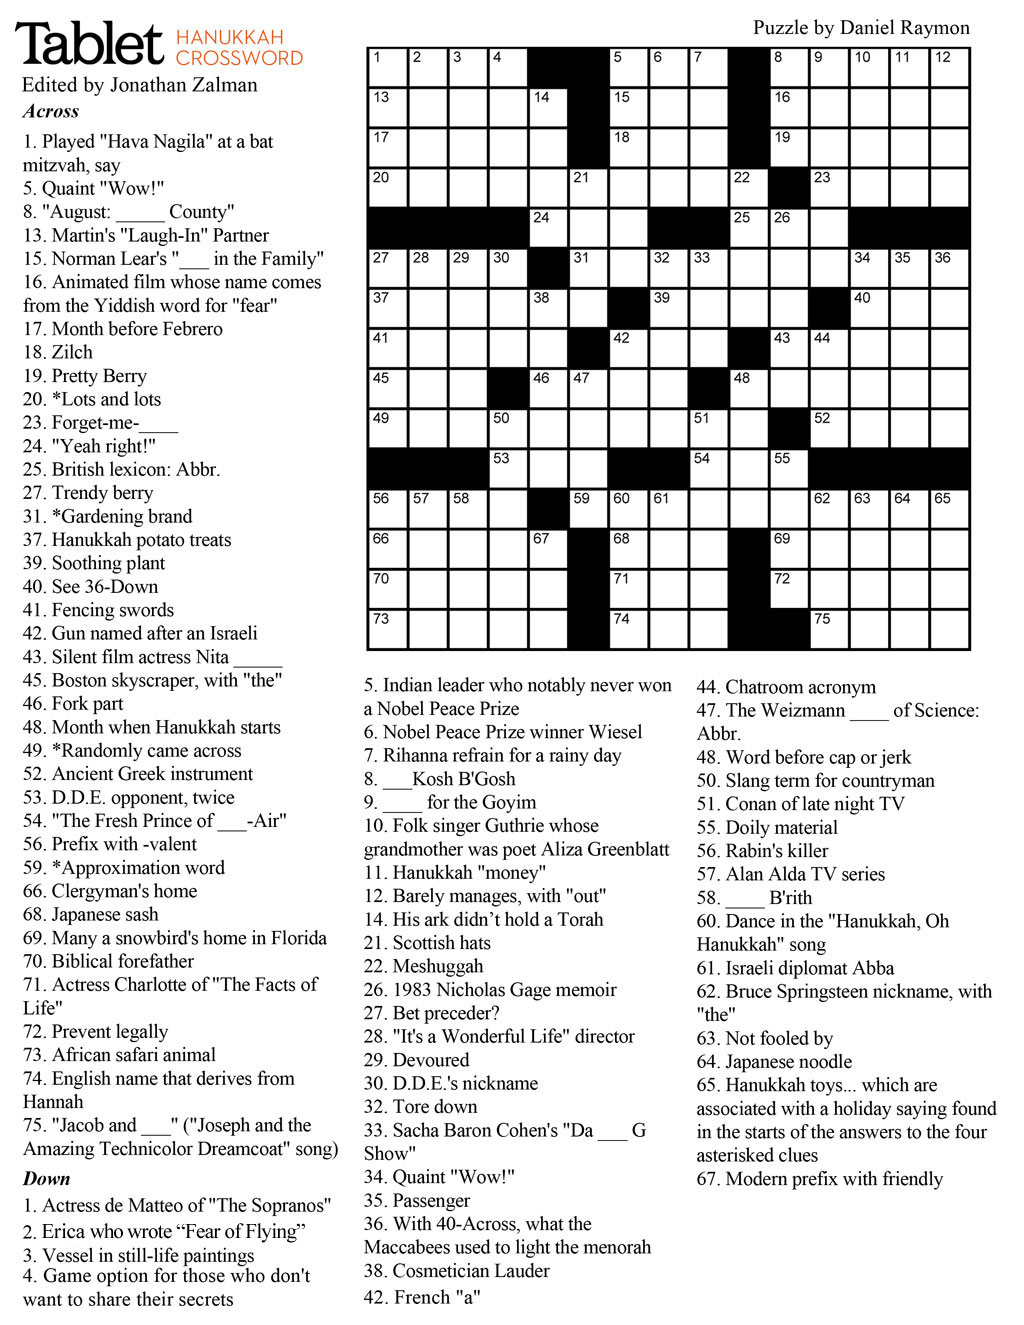 Wind Down With Our Hanukkah Crossword Puzzle! – Tablet Magazine - Printable Crossword Puzzles 2019